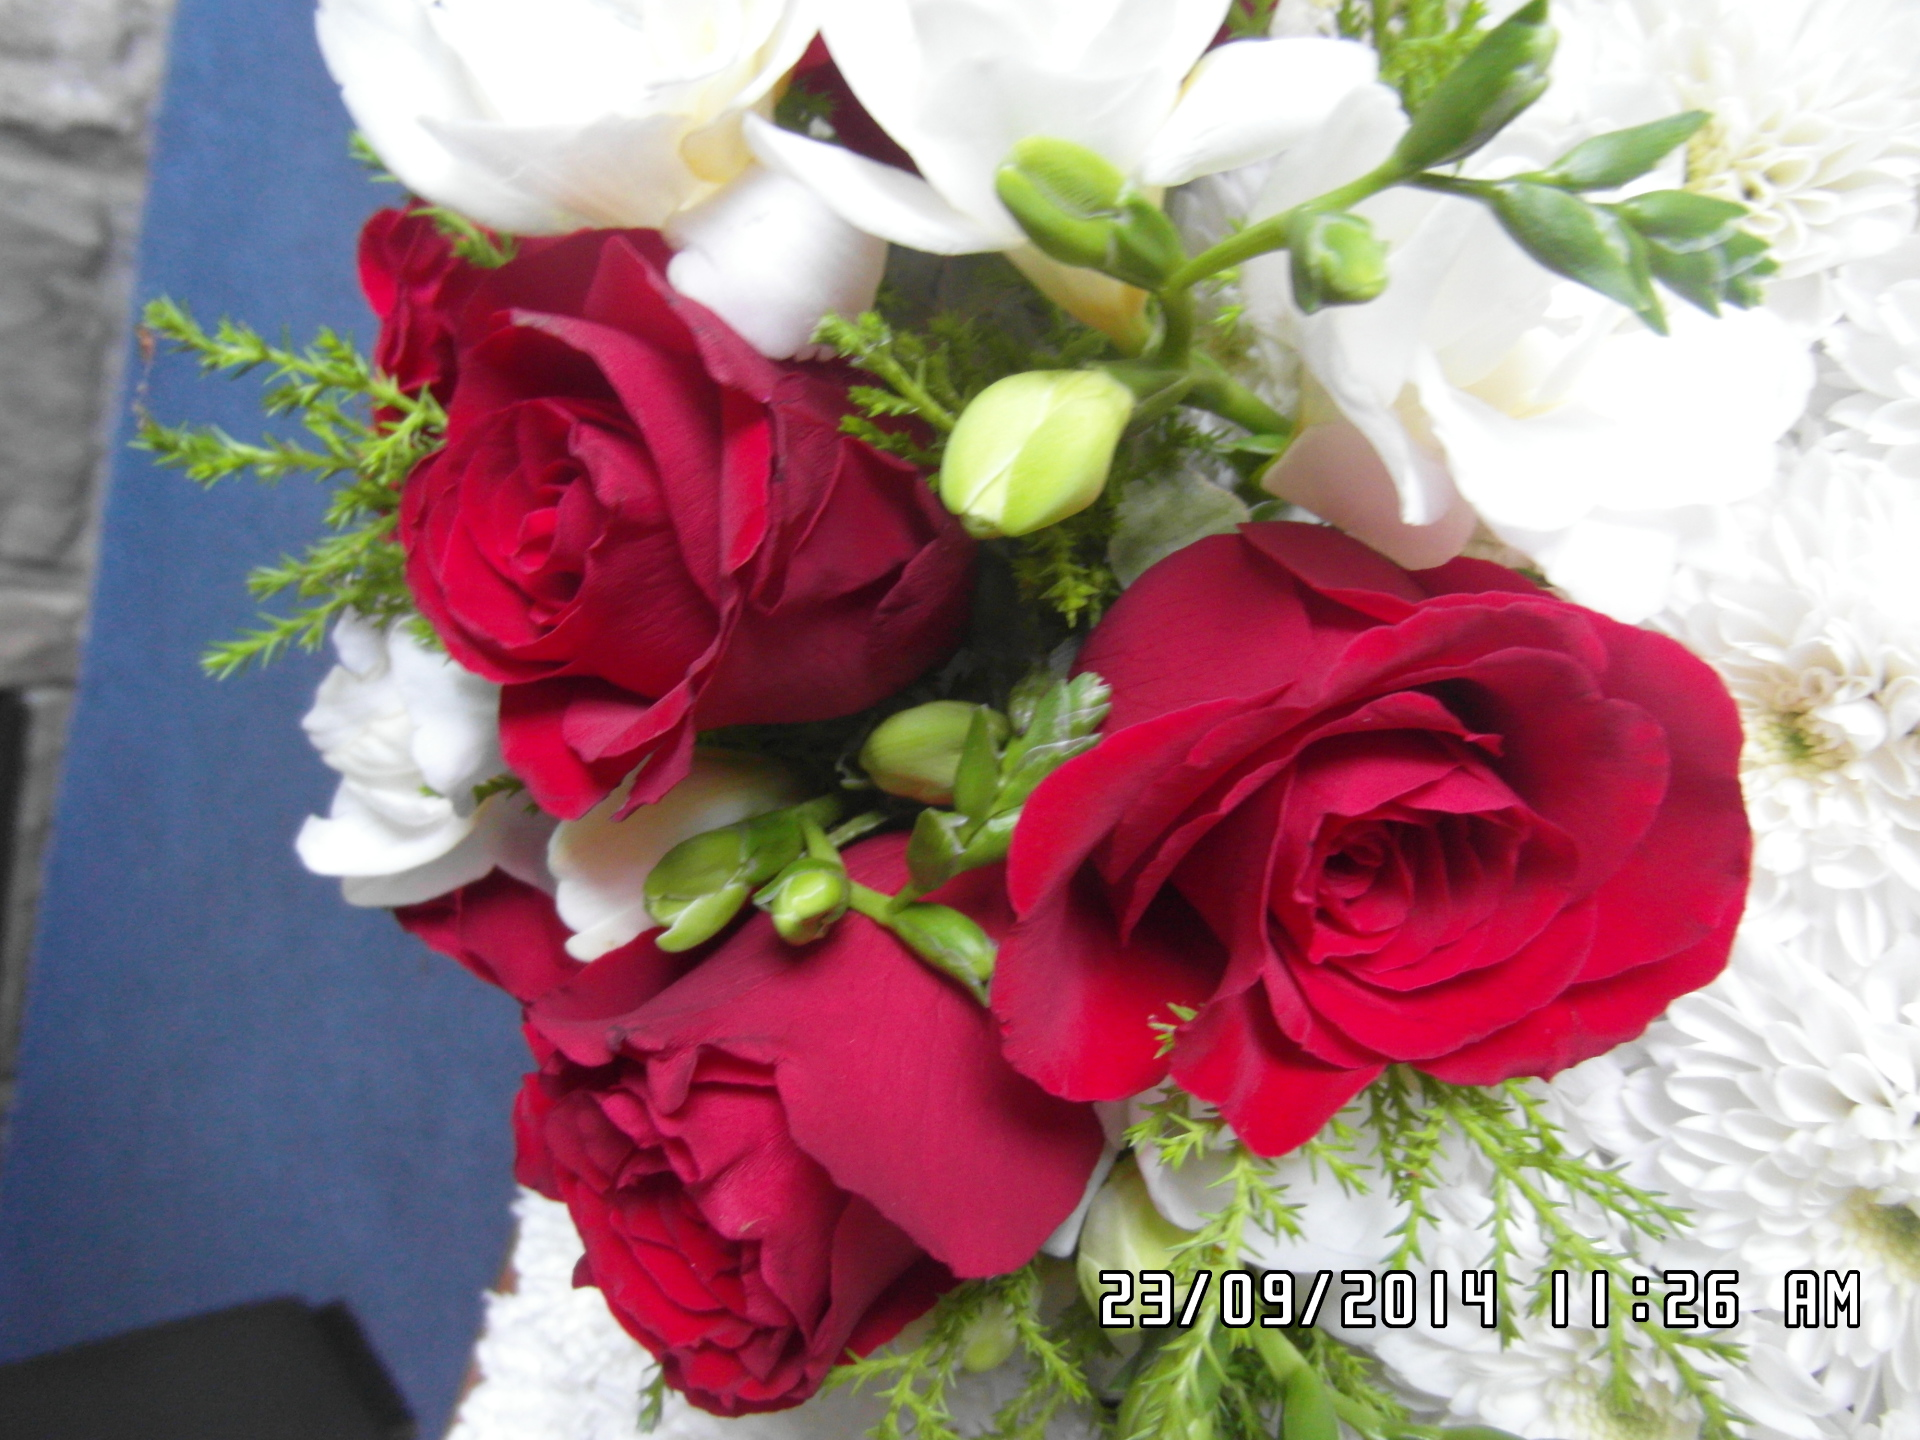 red roses & white freesias in a chairback